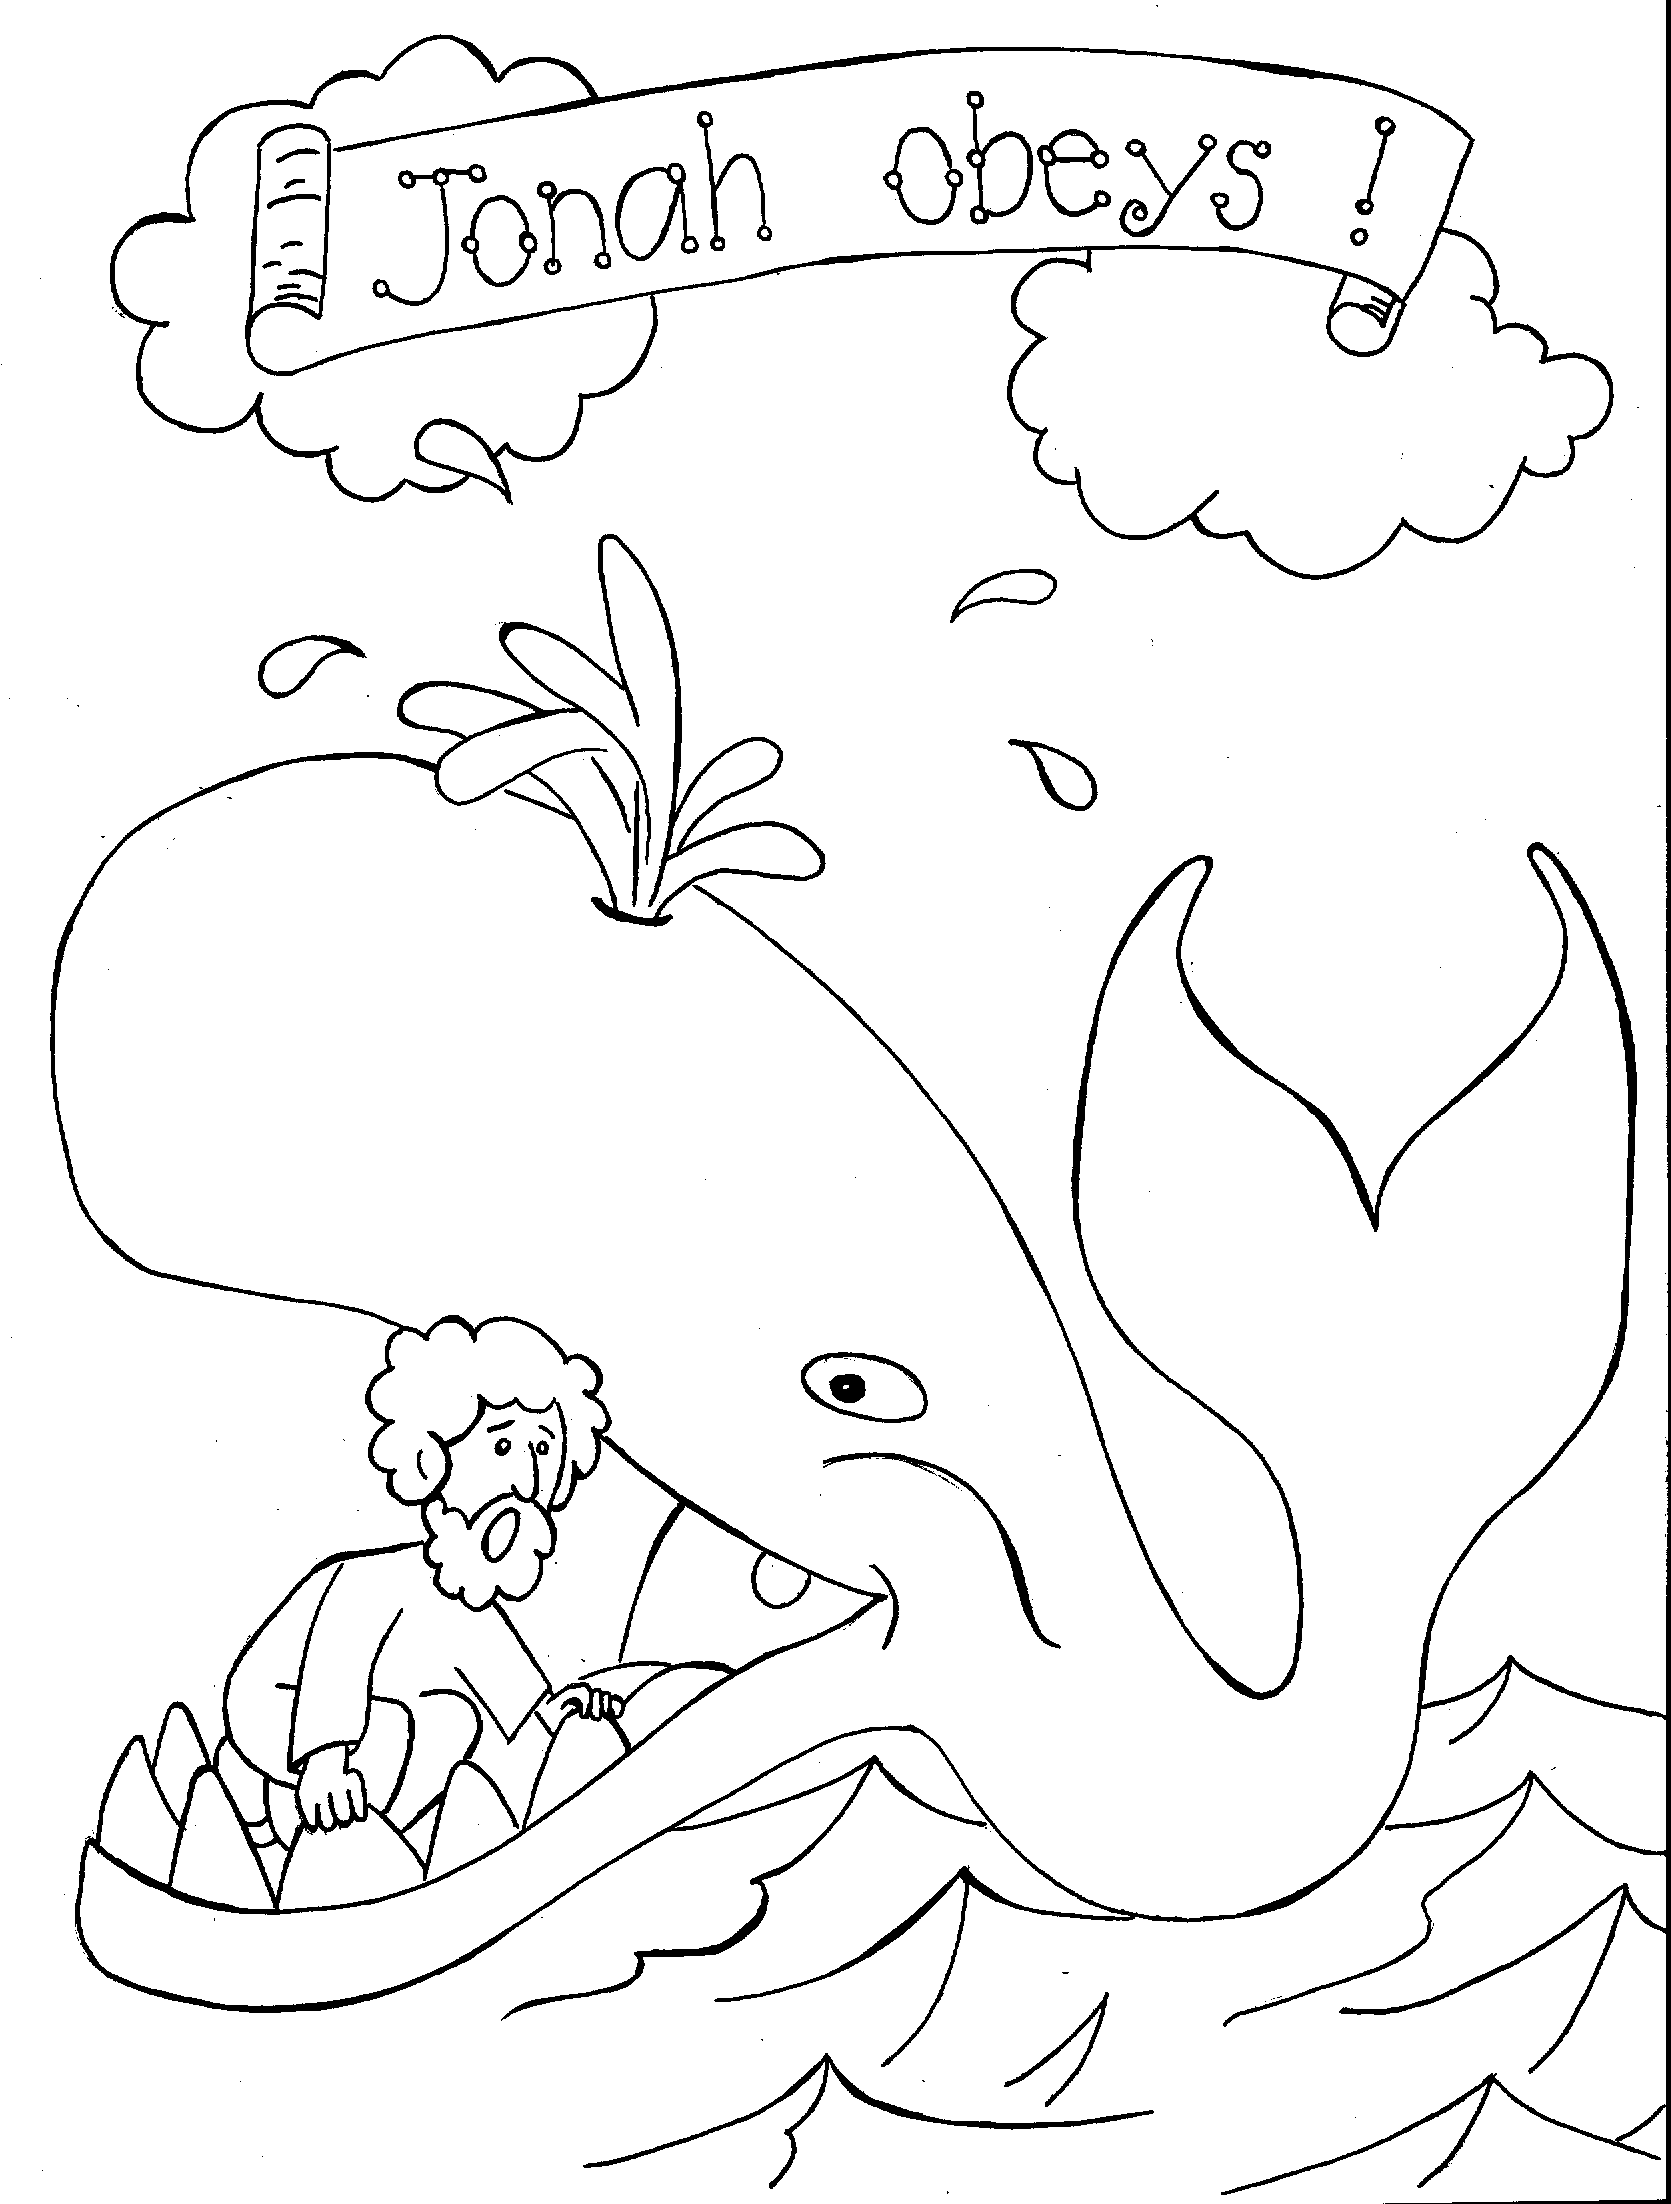 Free printable whale coloring pages for kids for Bible story coloring pages printable